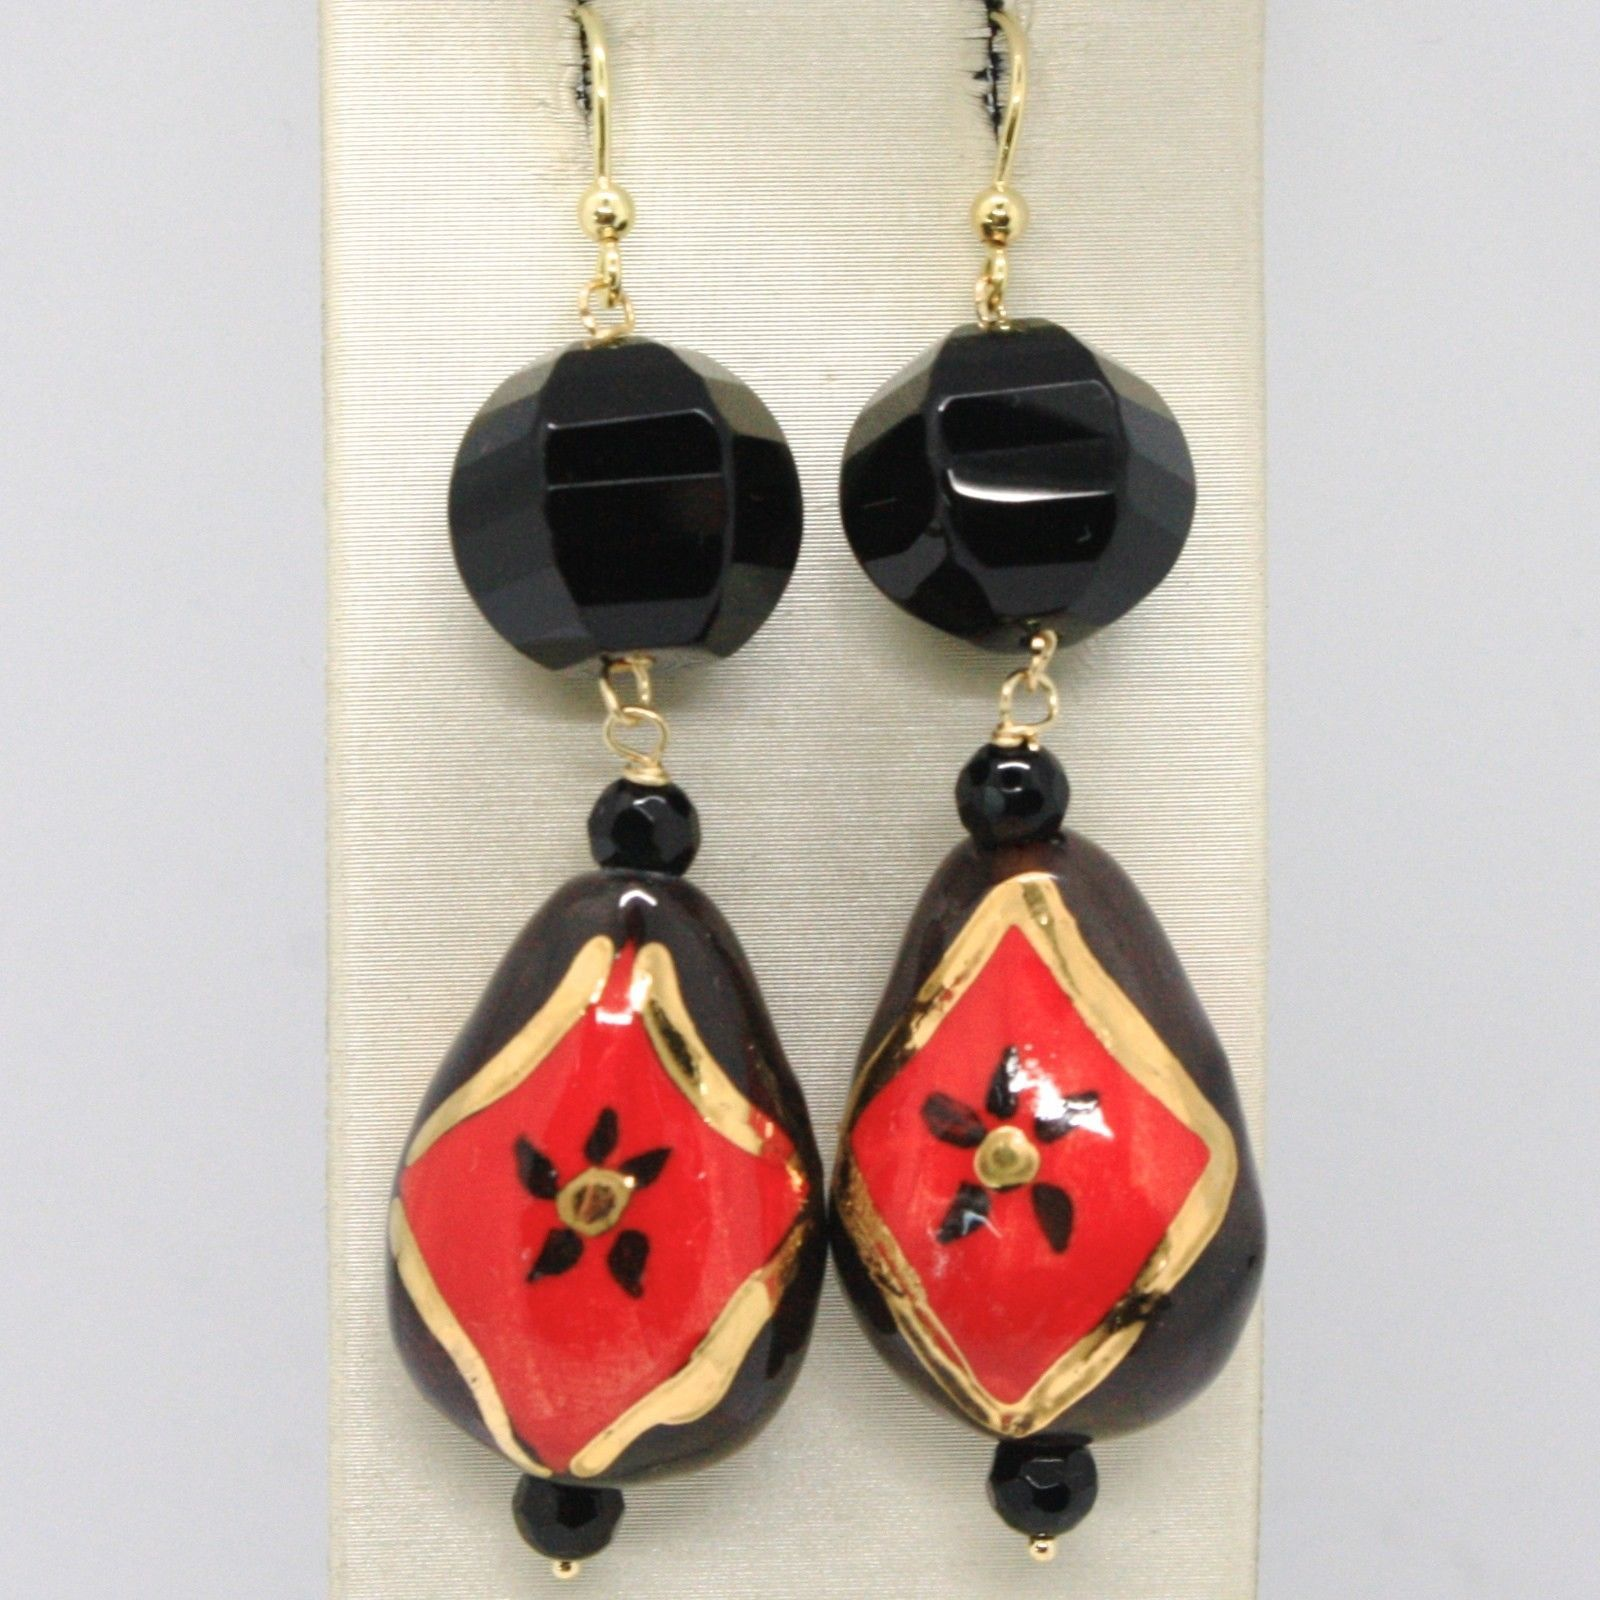 18K YELLOW GOLD EARRINGS ONYX, BLACK AND RED CERAMIC DROP HAND PAINTED IN ITALY